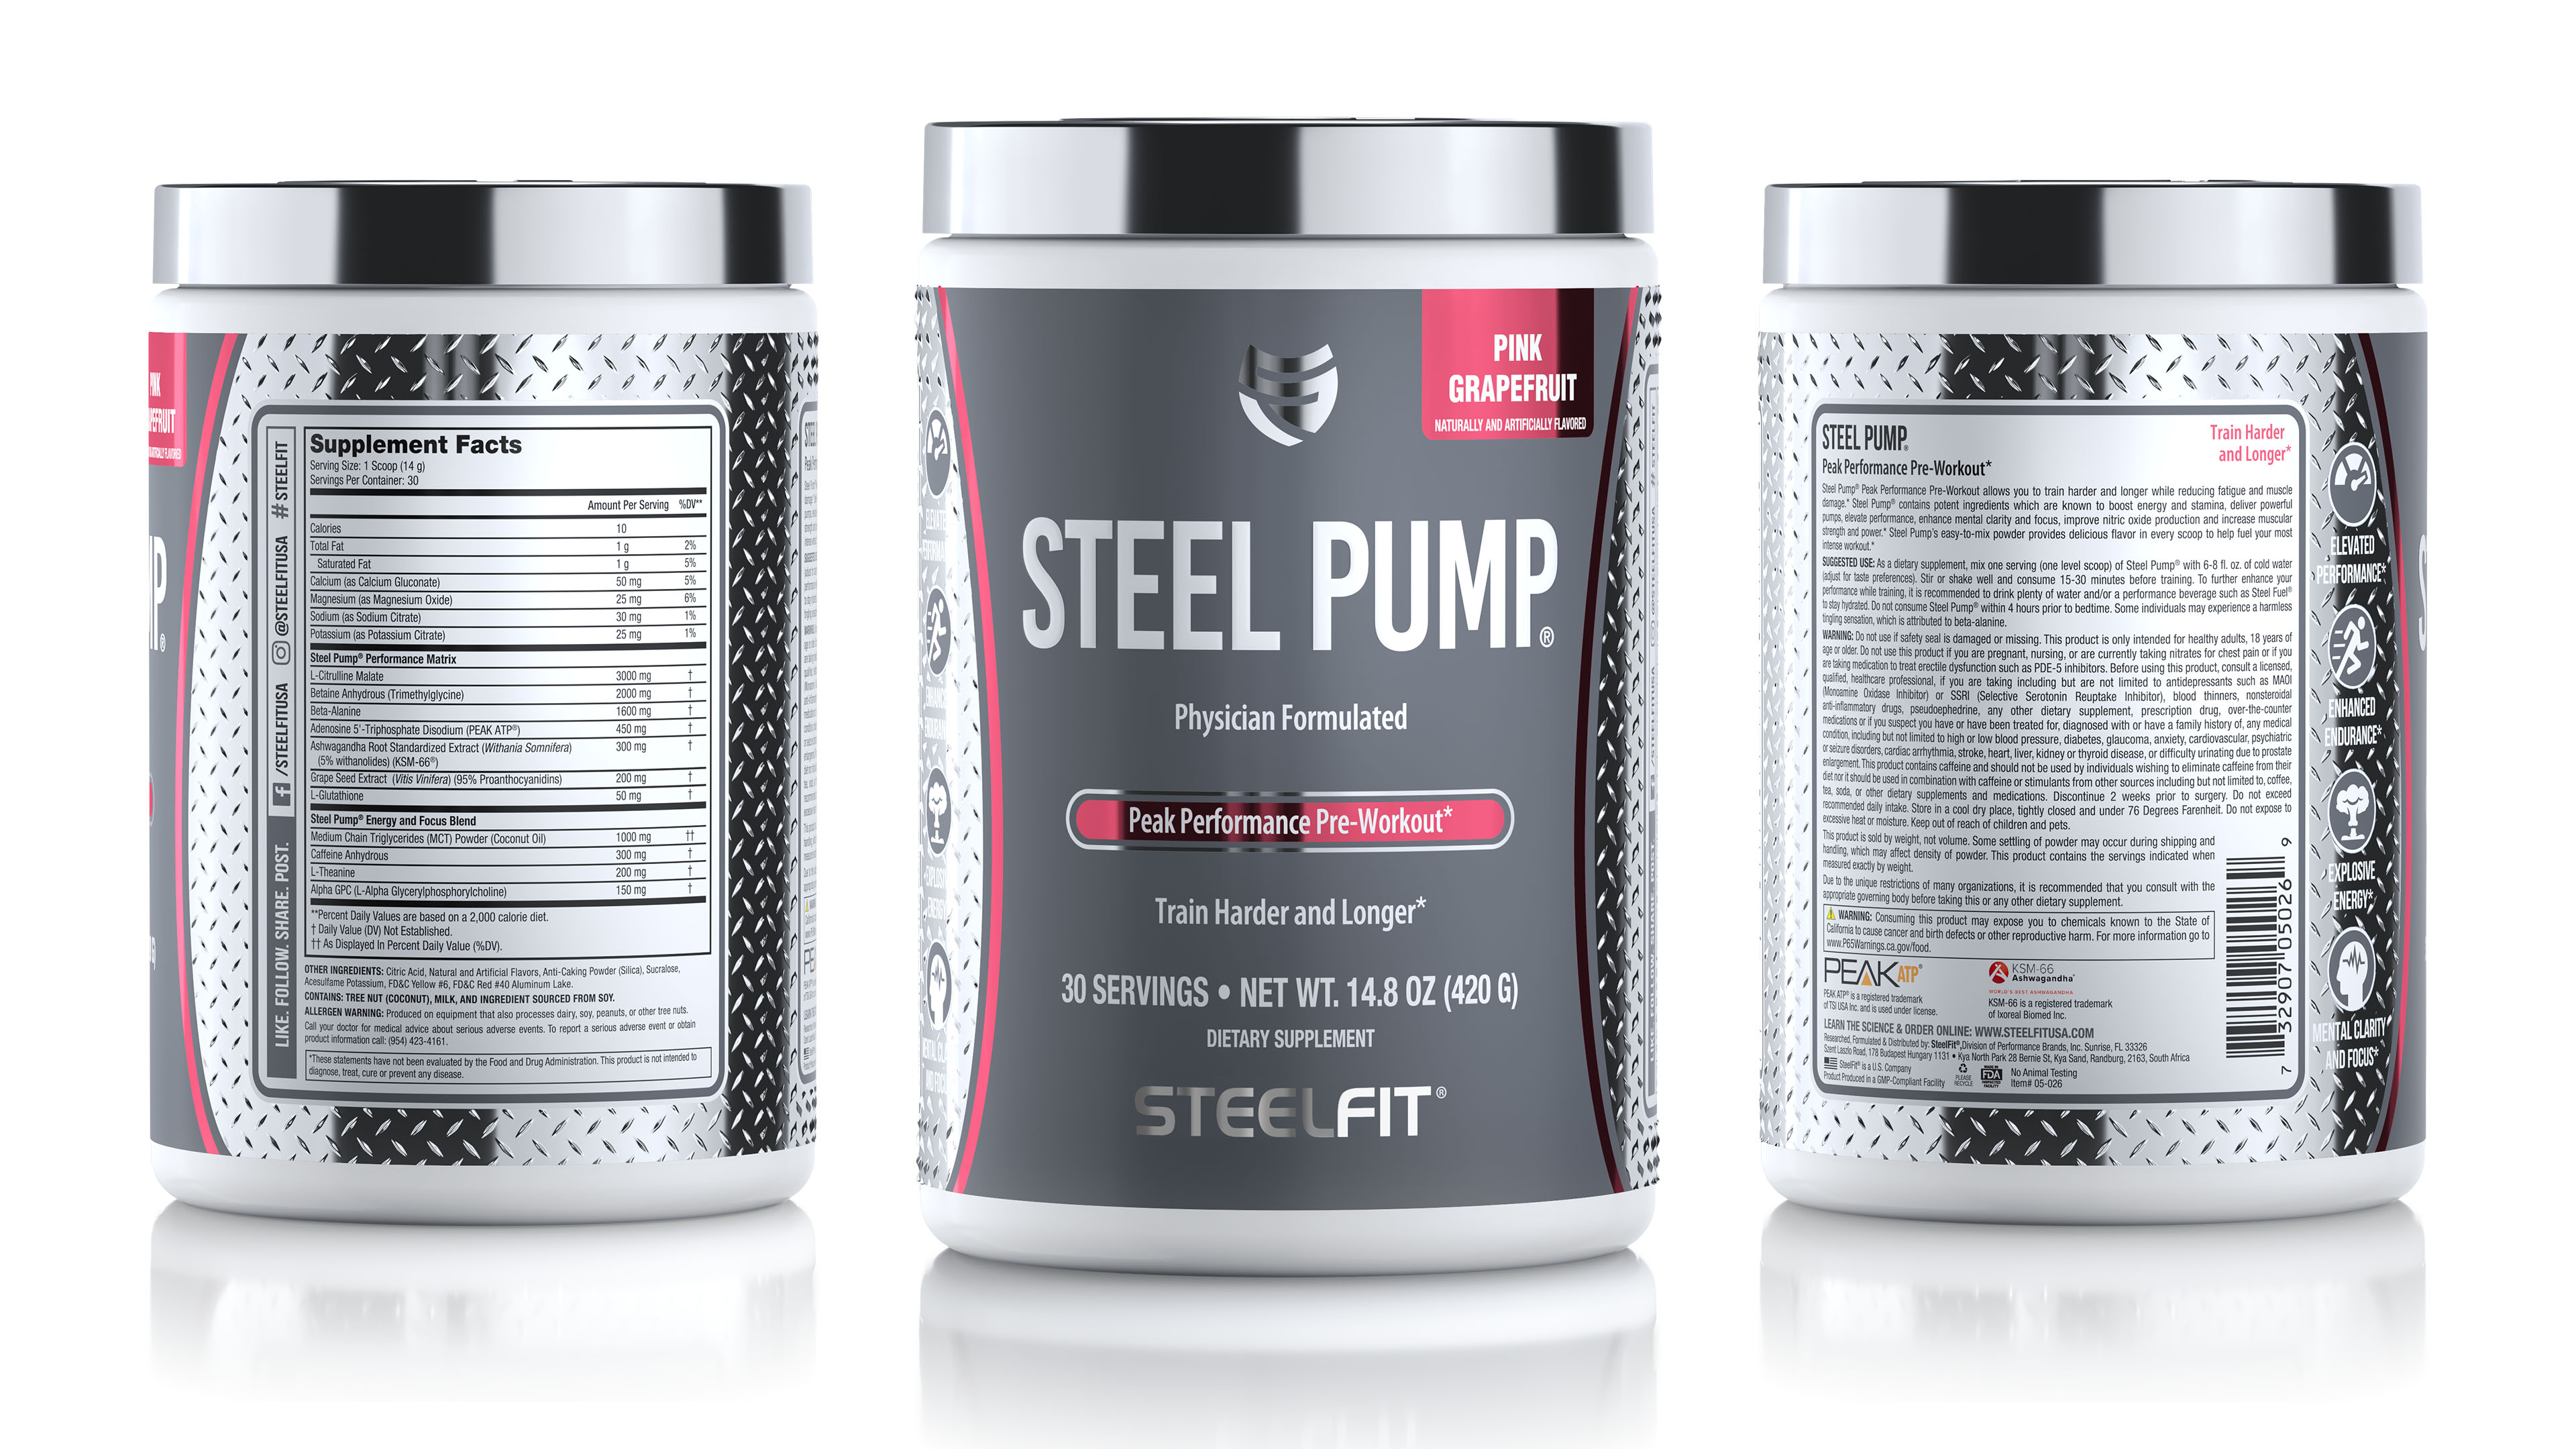 Steel Pump nutrition capsule container package renderings